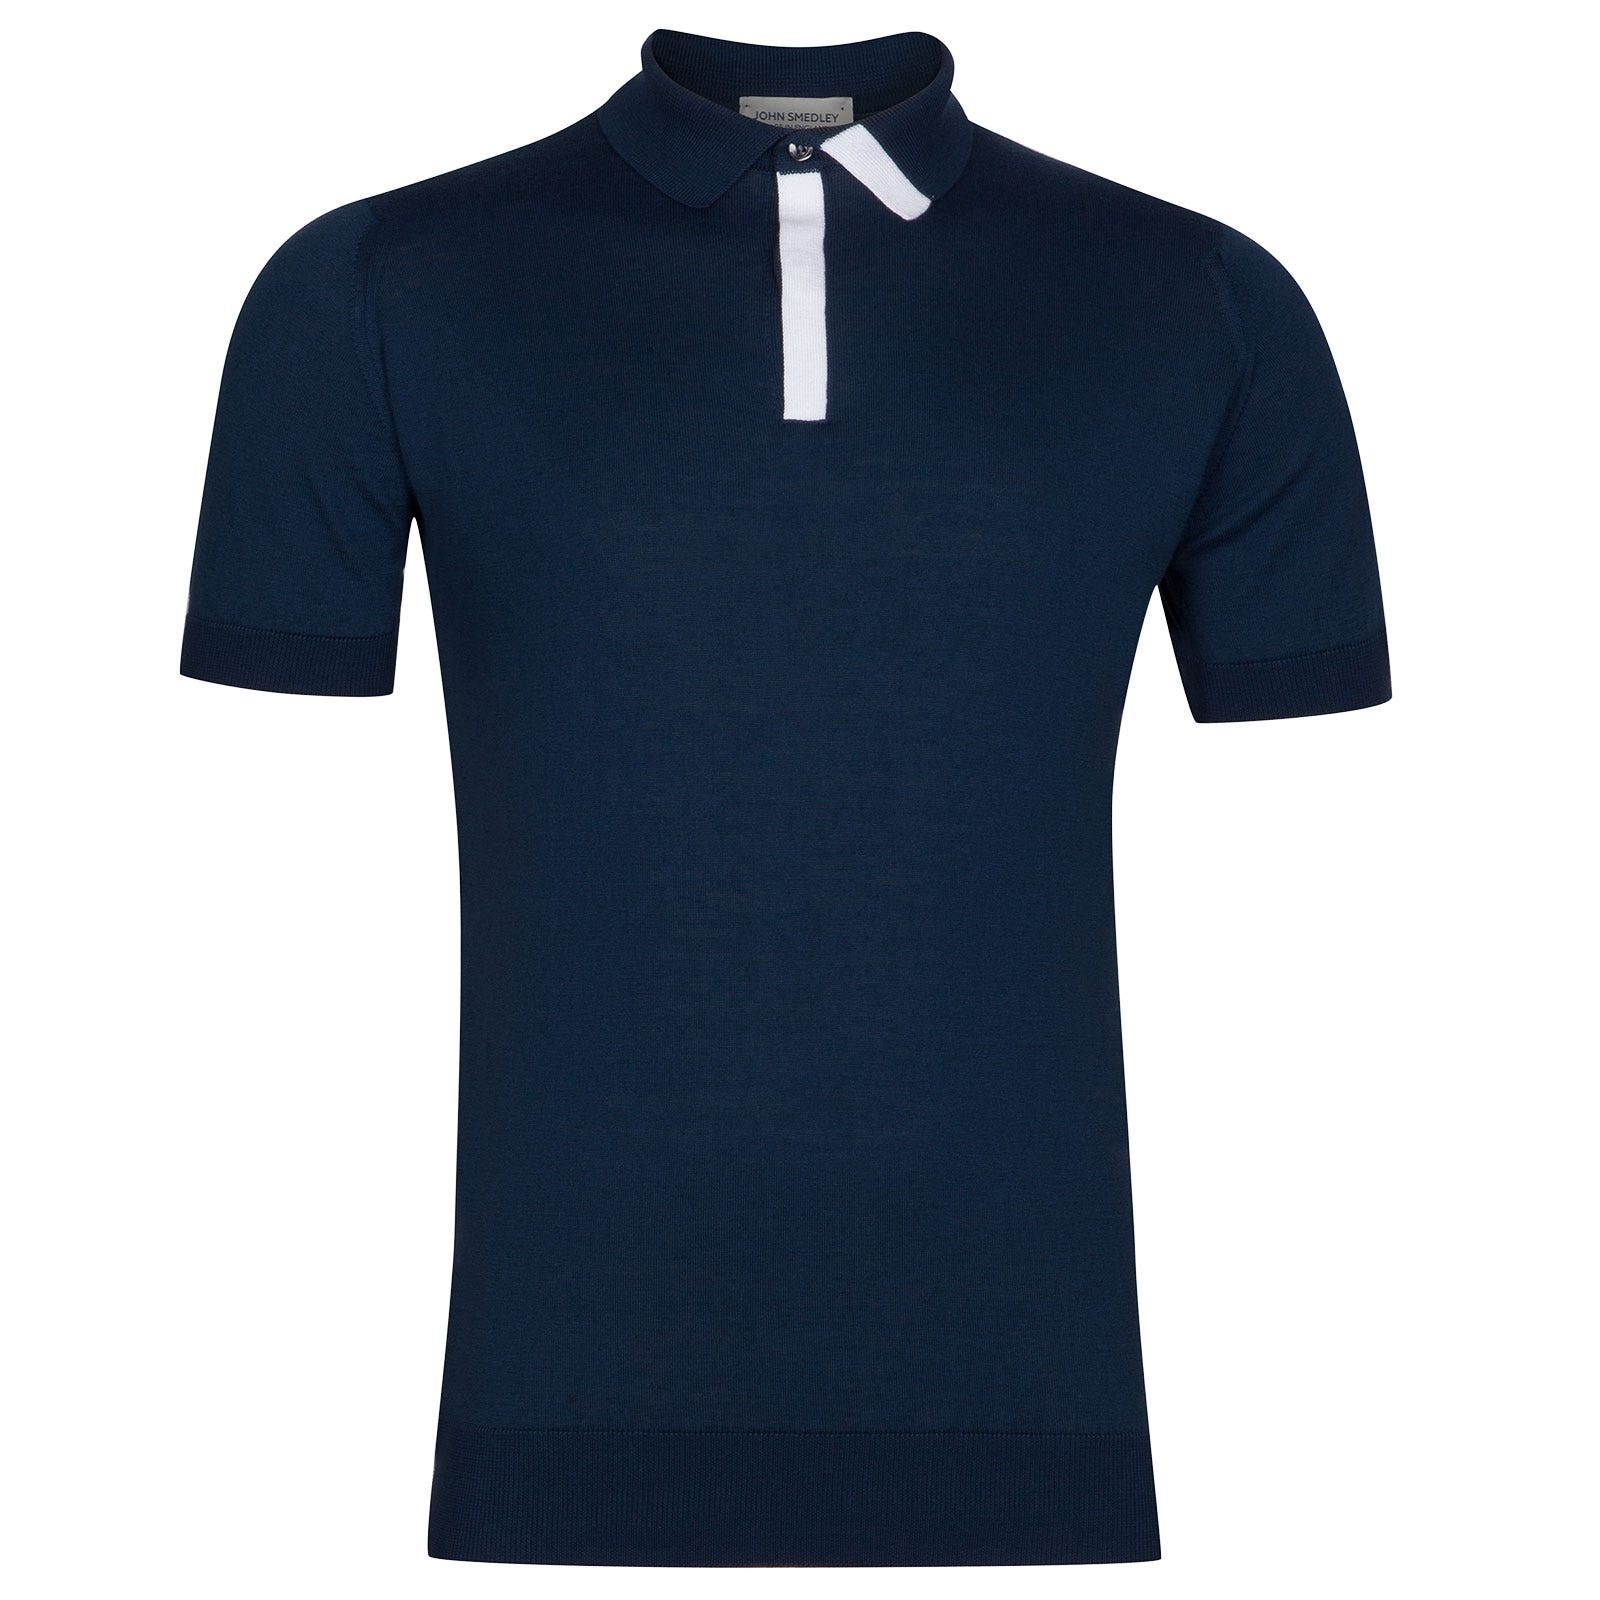 John Smedley Duxford Sea Island Cotton Polo Shirt in Indigo-XLG